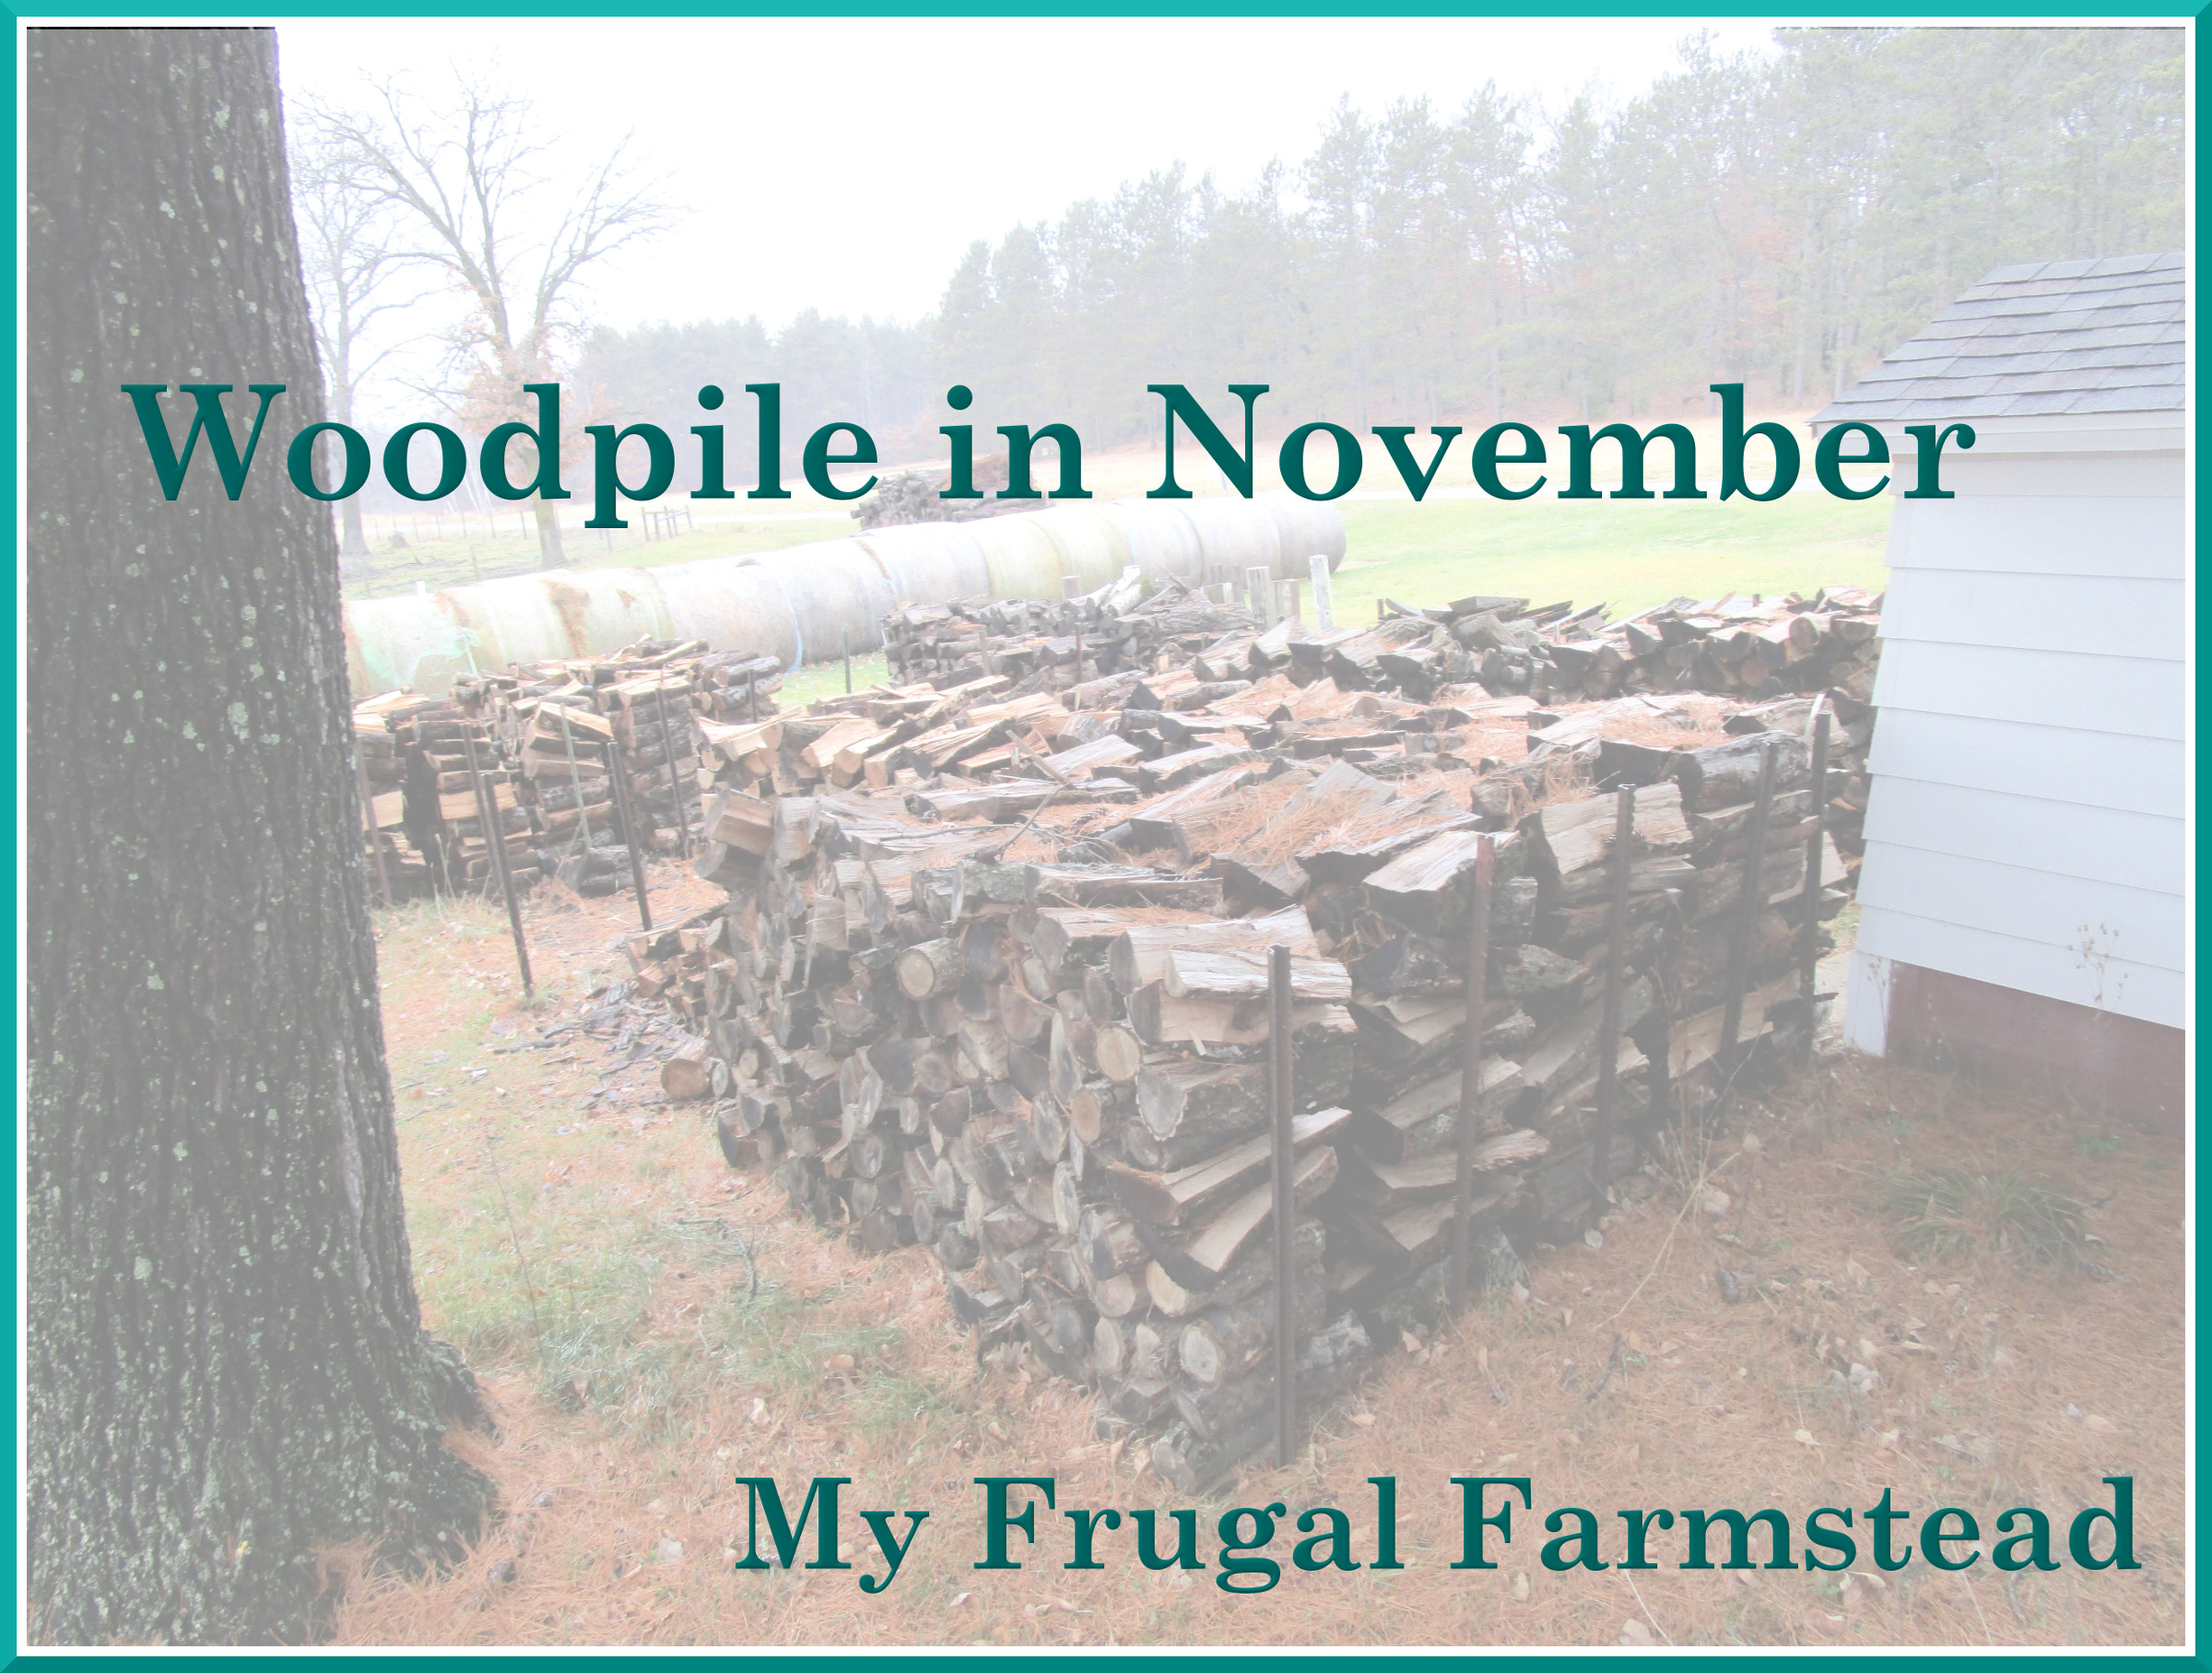 Woodpile in November